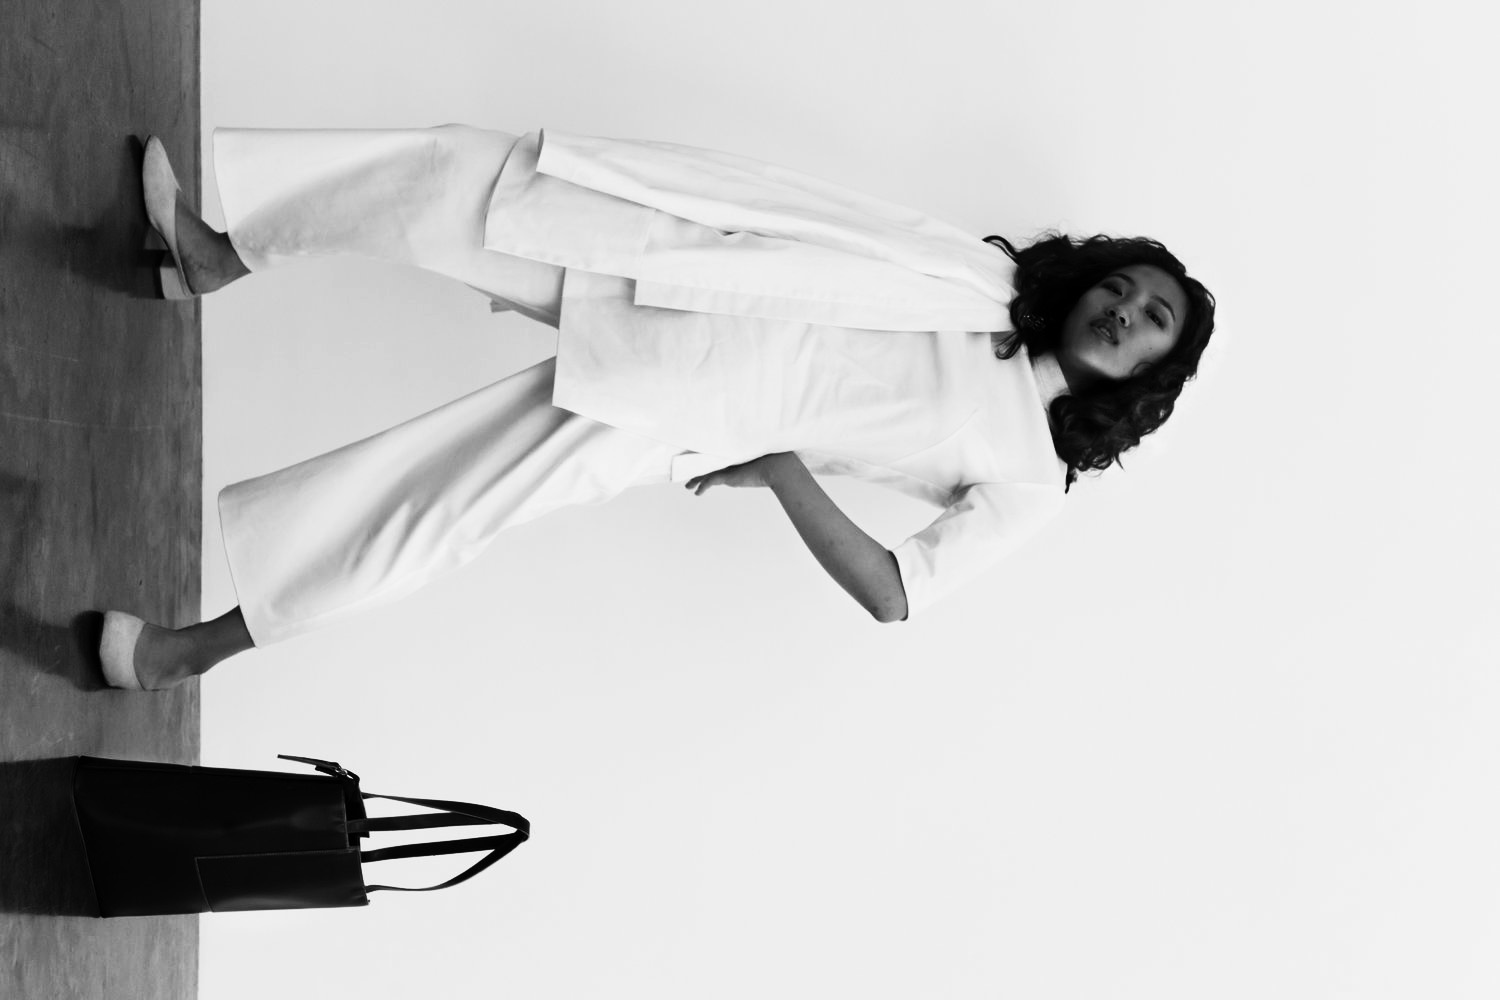 M - An Editorialised online magazine aimed at empowering women through style. Our aim isto promote a more sustainable and ethical mindset to fashion.by Melissa